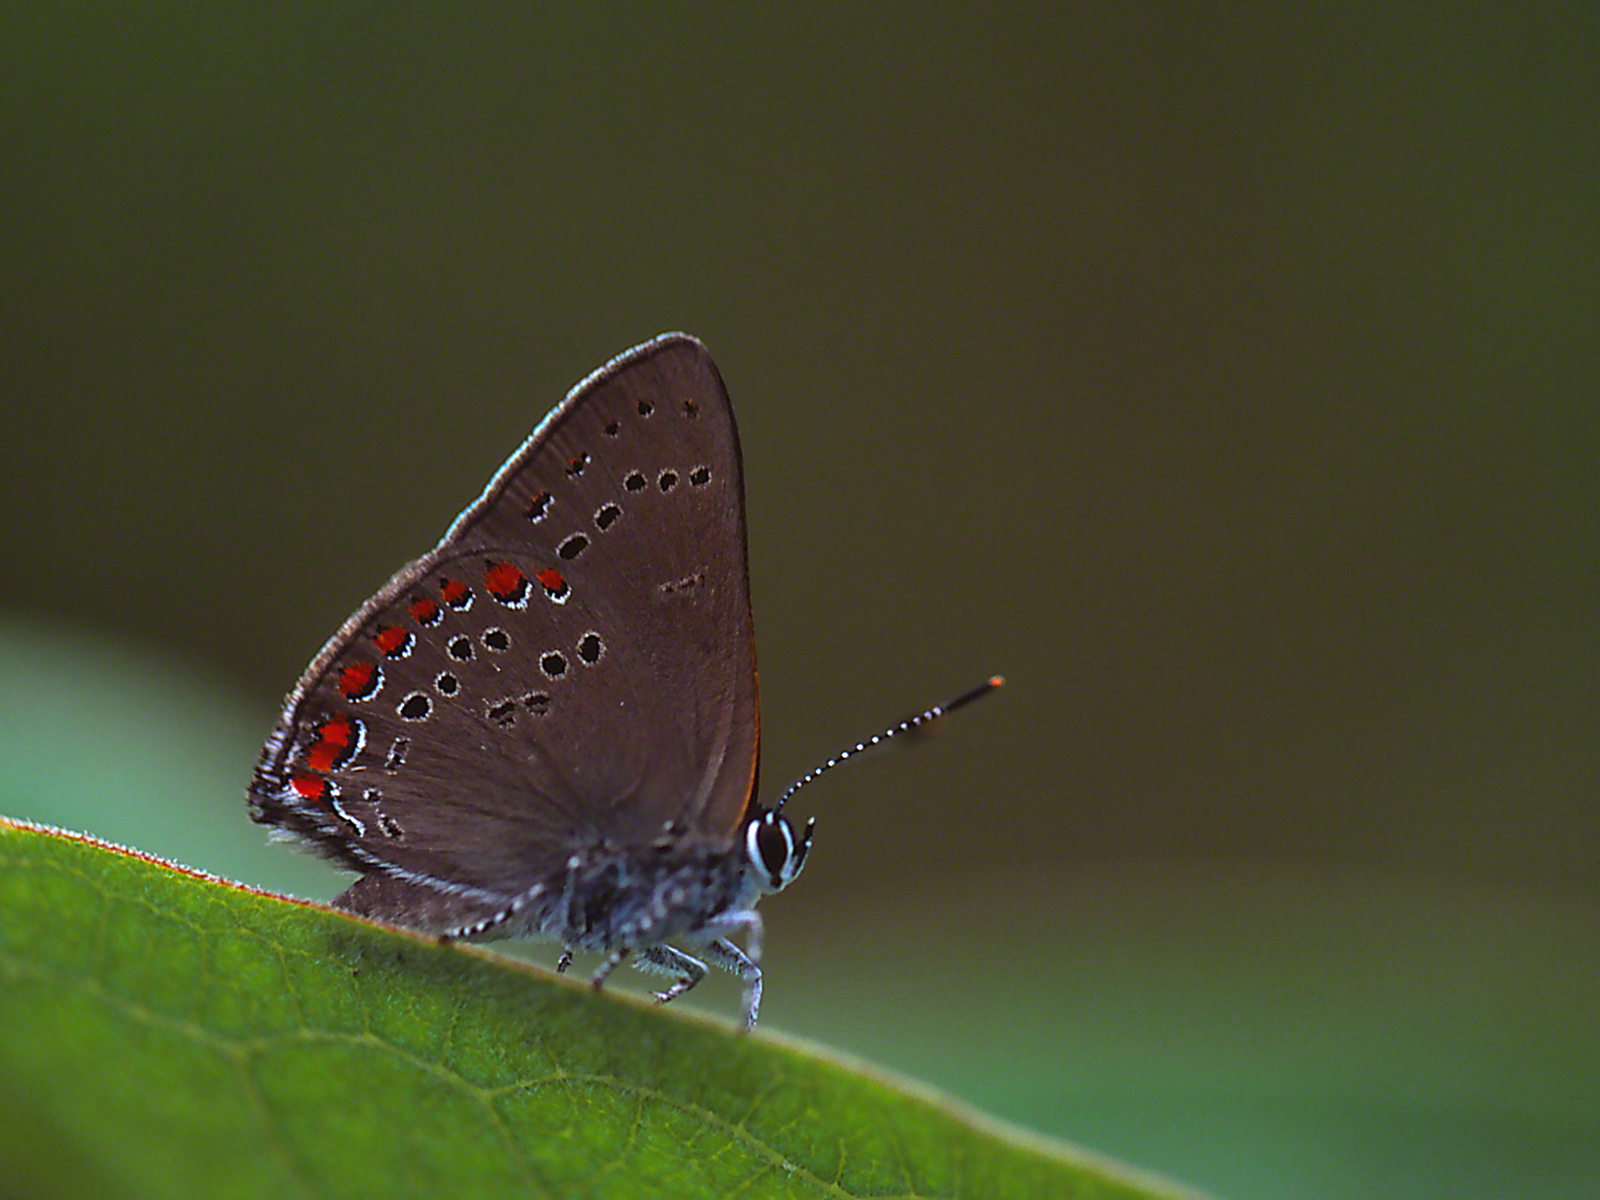 Coral Hairstreak Butterfly on Oxe-eye Daisy photographed by Jeff Zablow at Lynx Prairie, OH